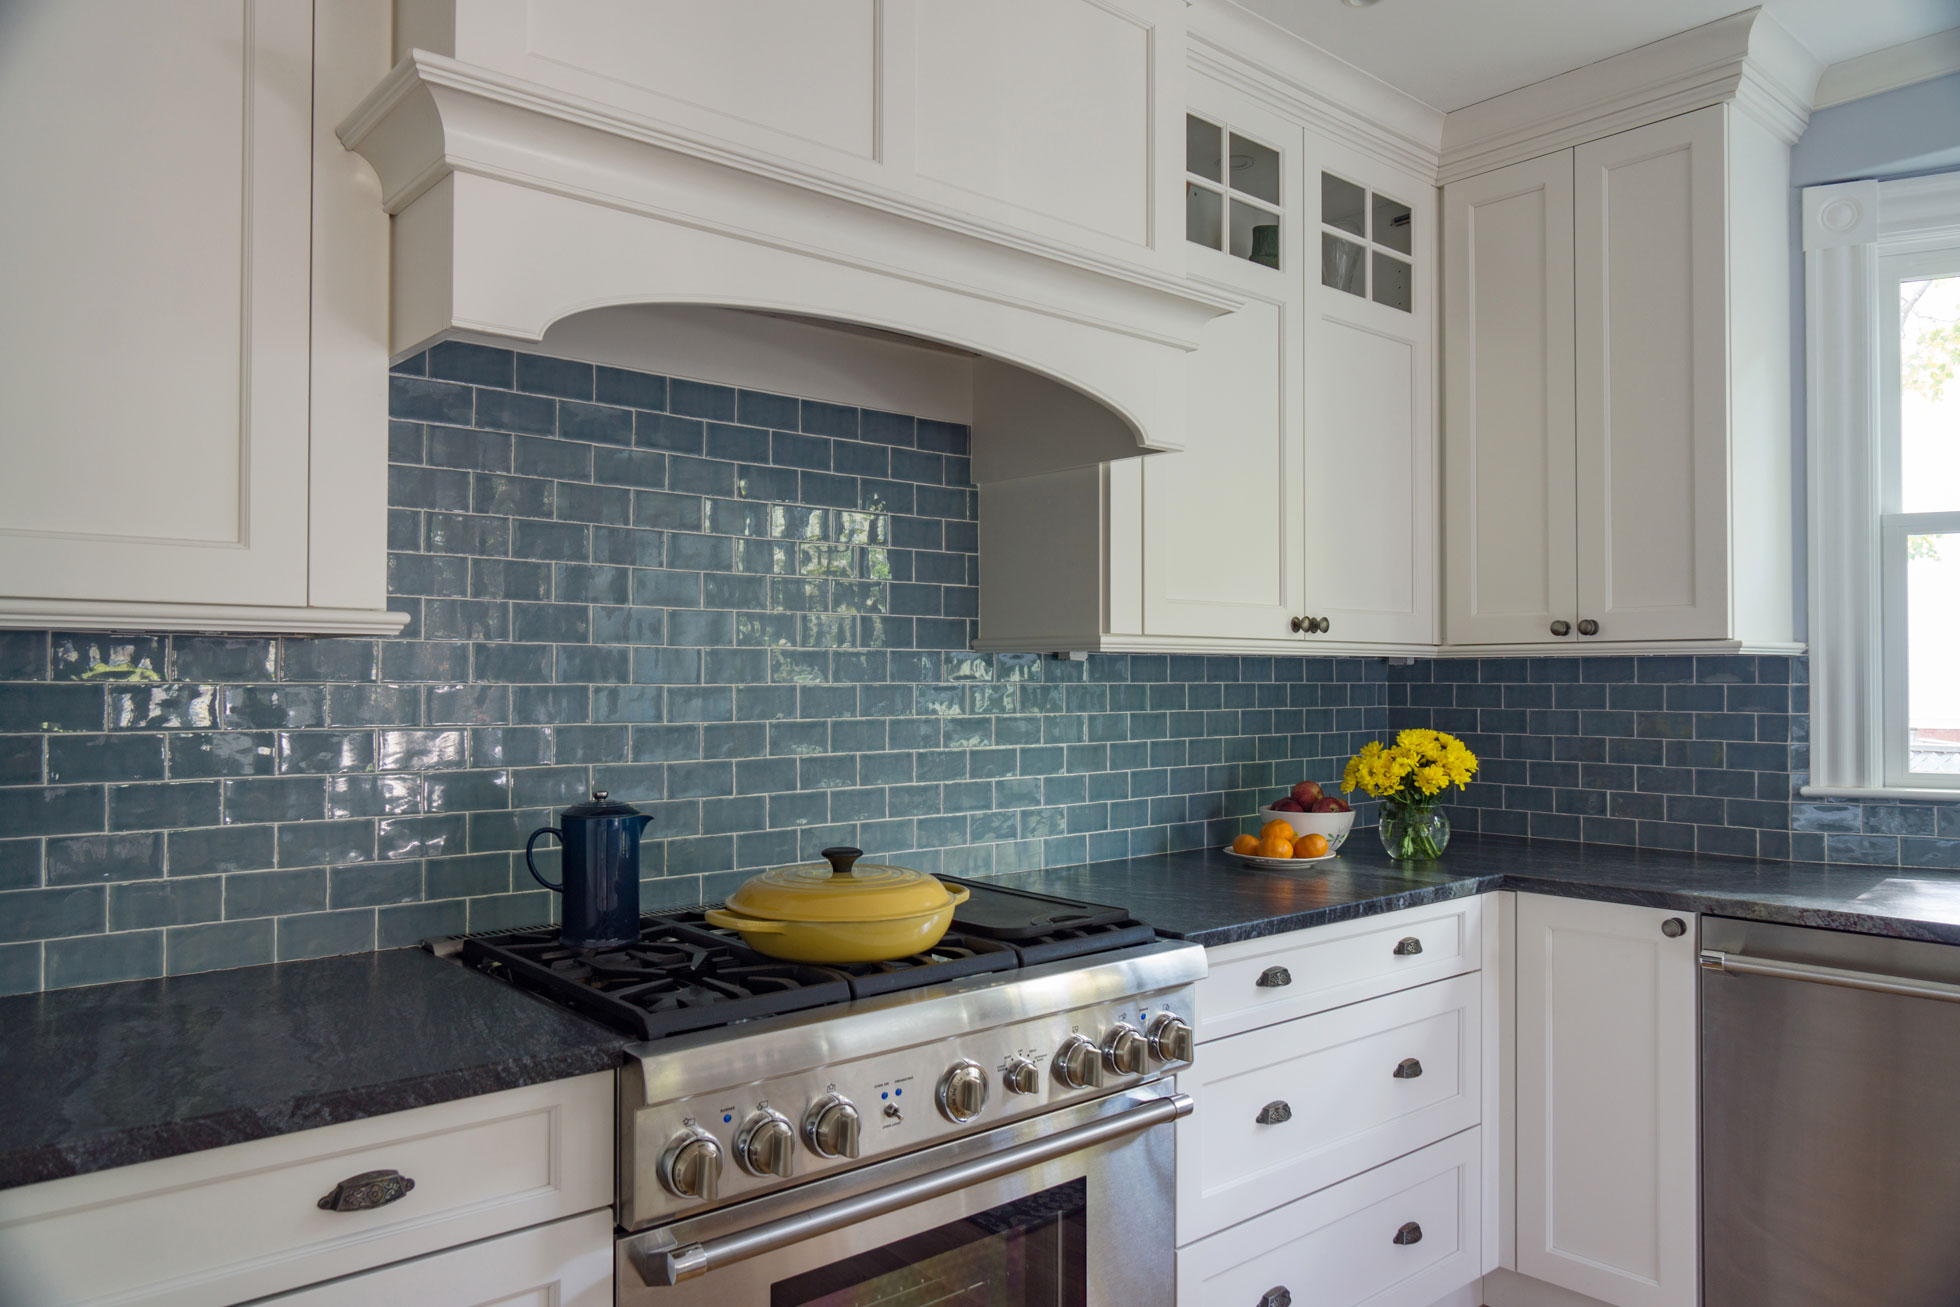 traditional classic kitchen tile ideas rh originalstyle com tile ideas for kitchen counters tile ideas for kitchen walls